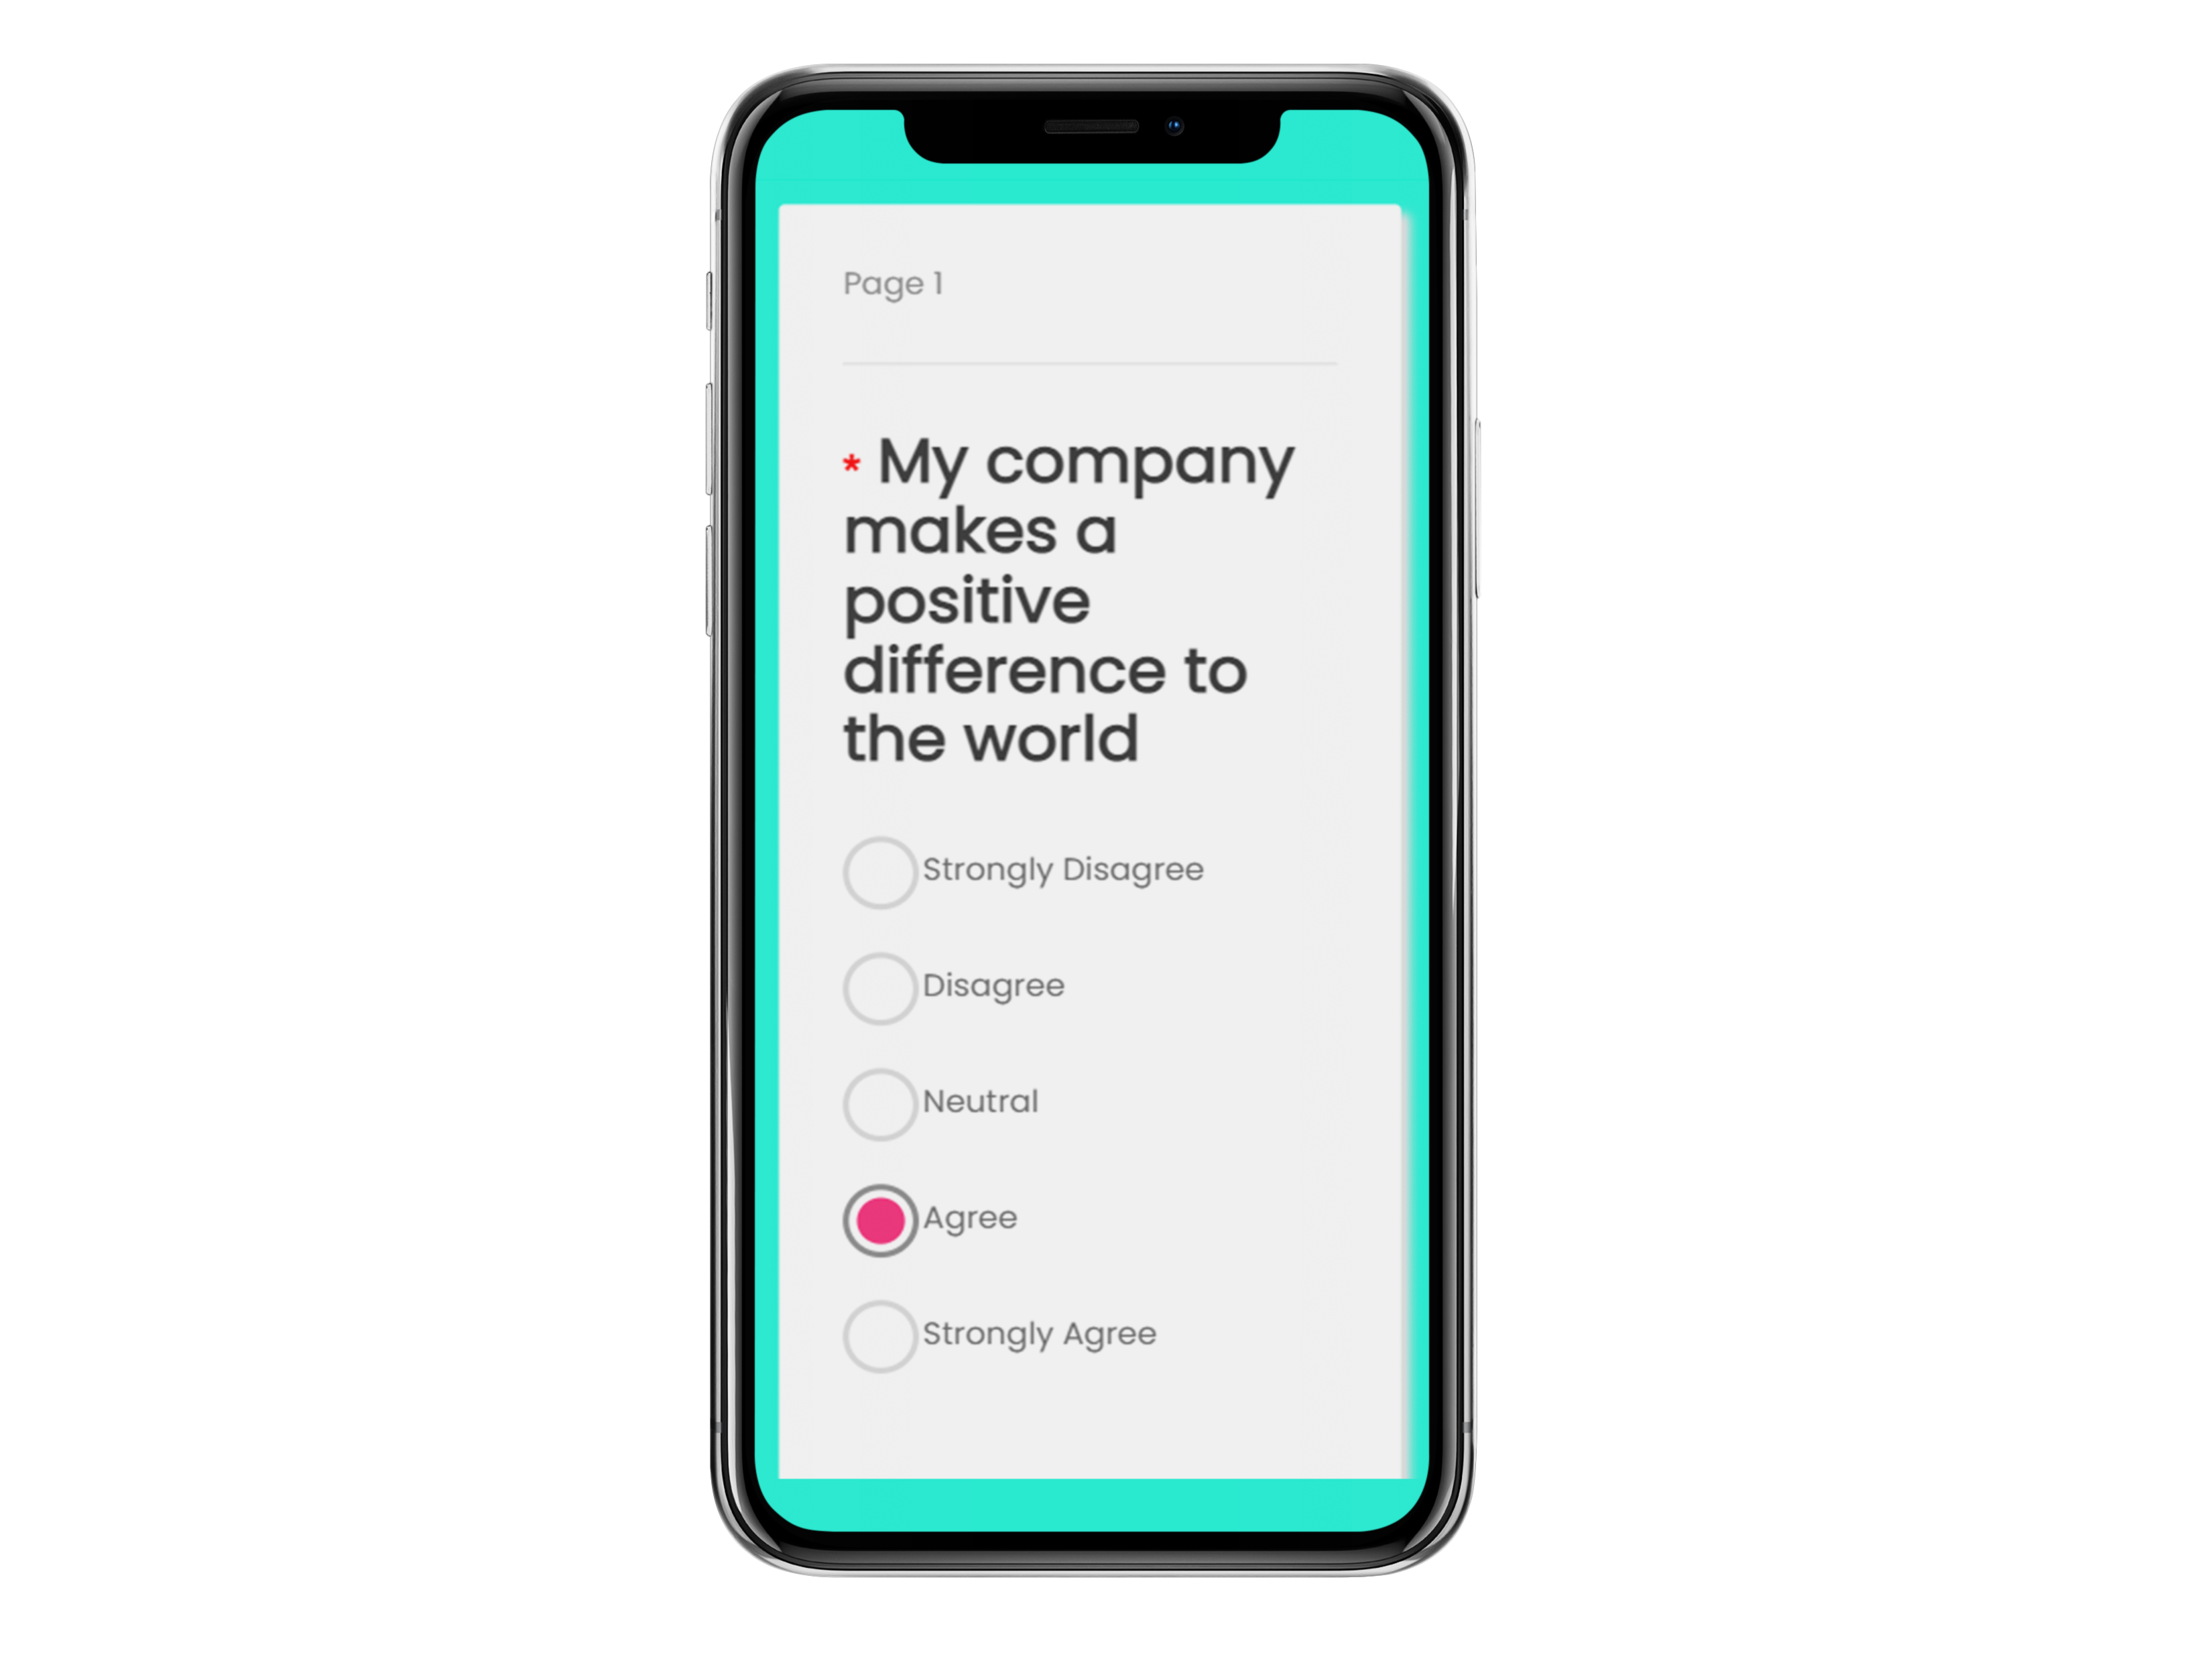 Image of an iphone showing an employee survey